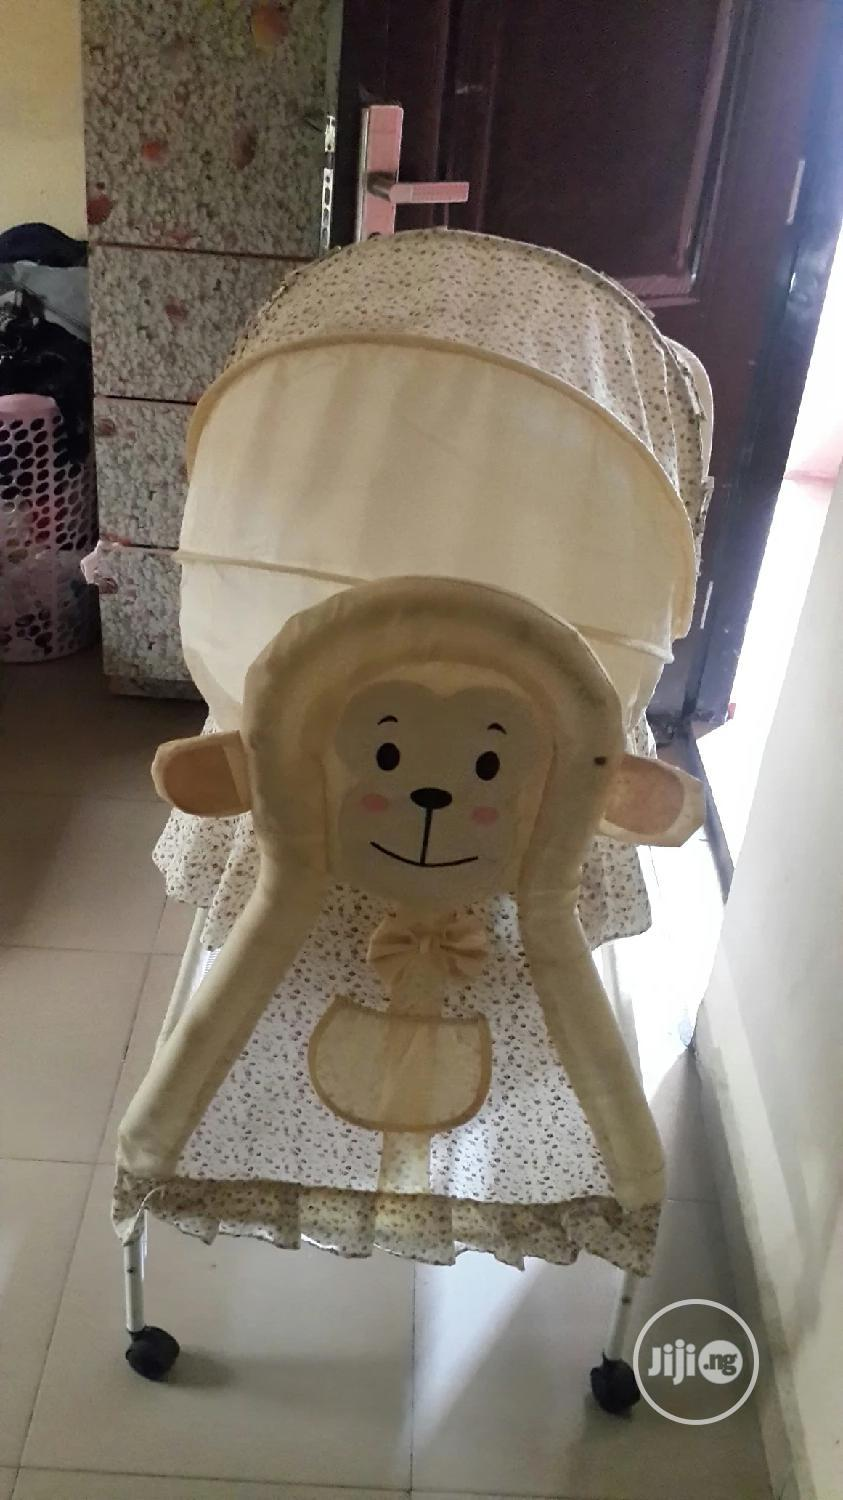 Baby Bed Clean | Children's Gear & Safety for sale in Port-Harcourt, Rivers State, Nigeria